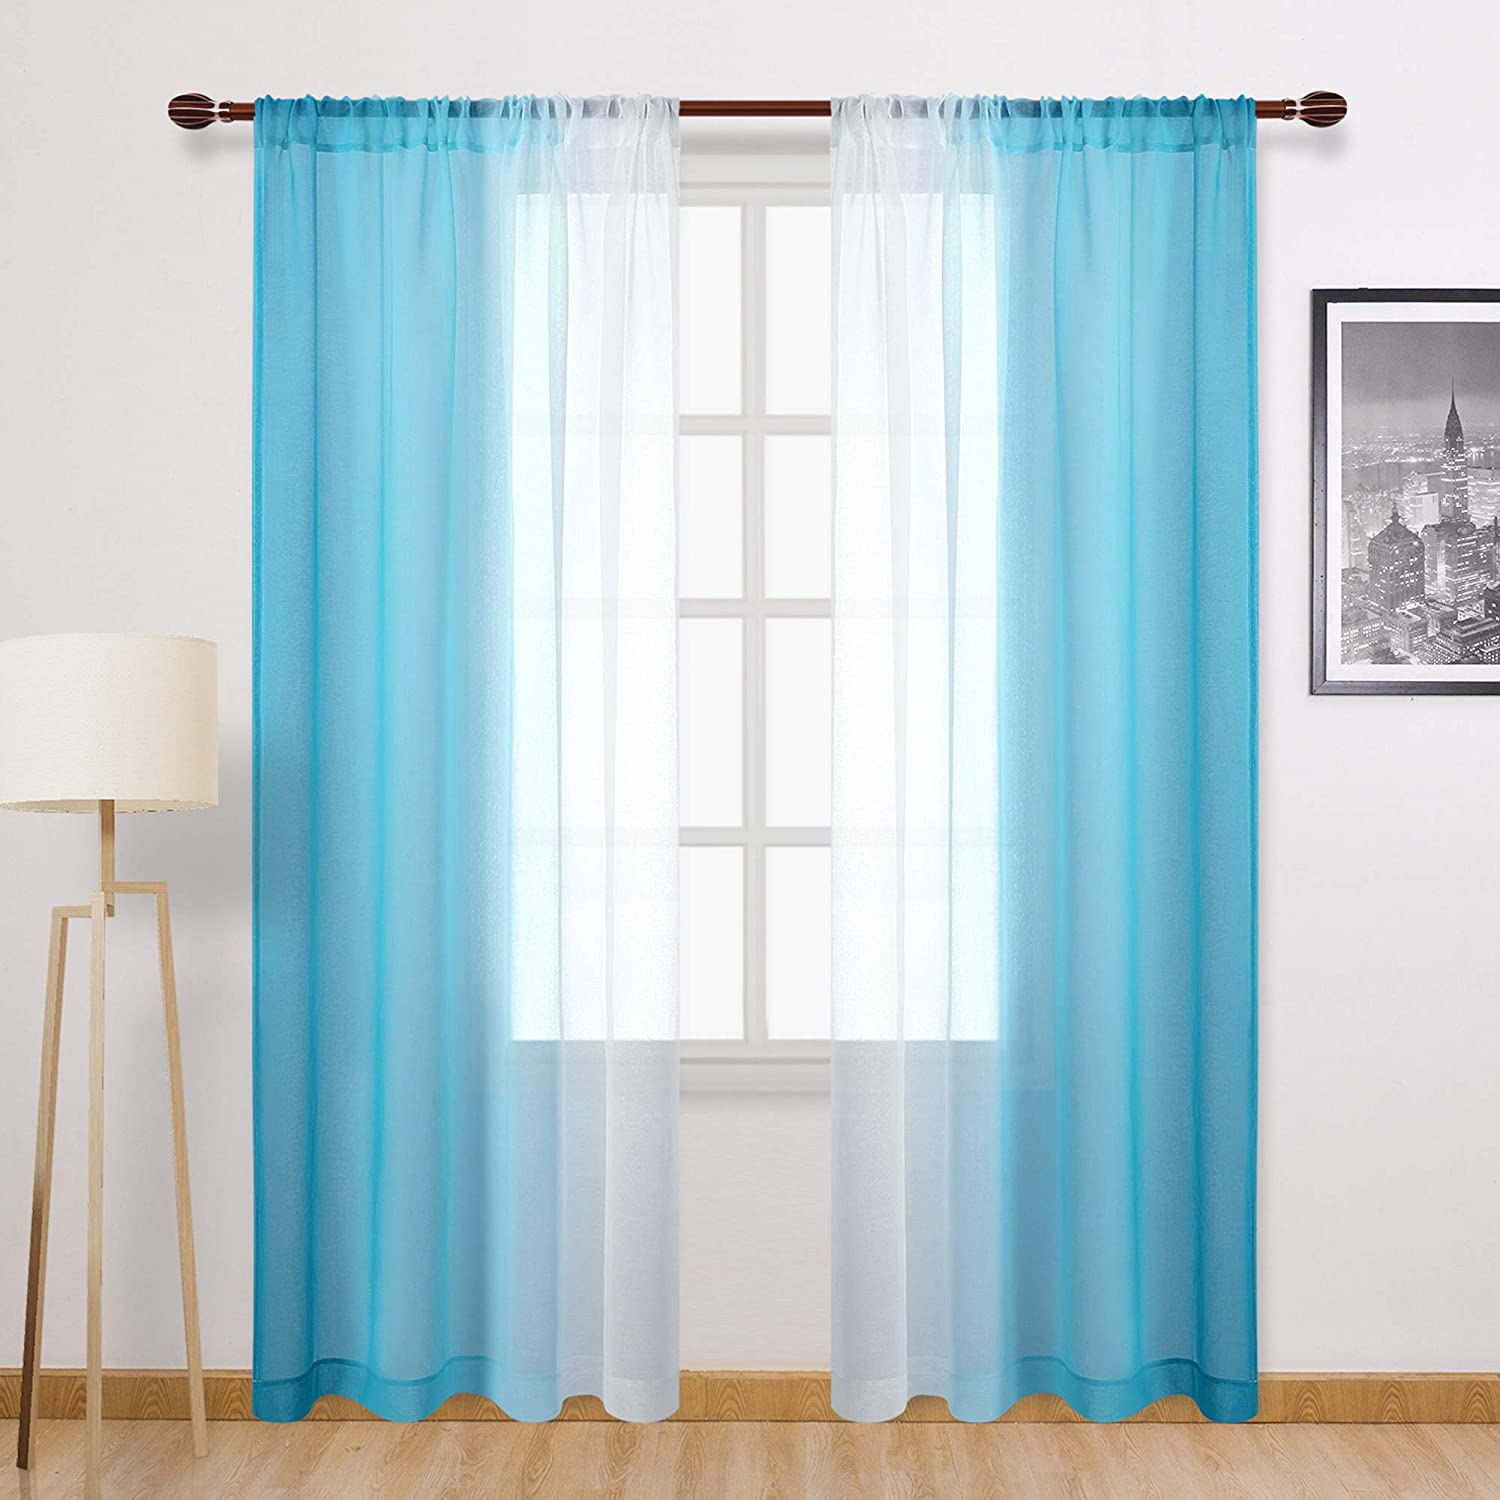 DWCN Ombre Sheer Curtains - Faux Linen Semi Voile Rod Pocket Gradient Curtains for Bedroom and Living Room, Set of 2 Window Curtain Panels, 52 x 84 Inches Long, Sky Blue